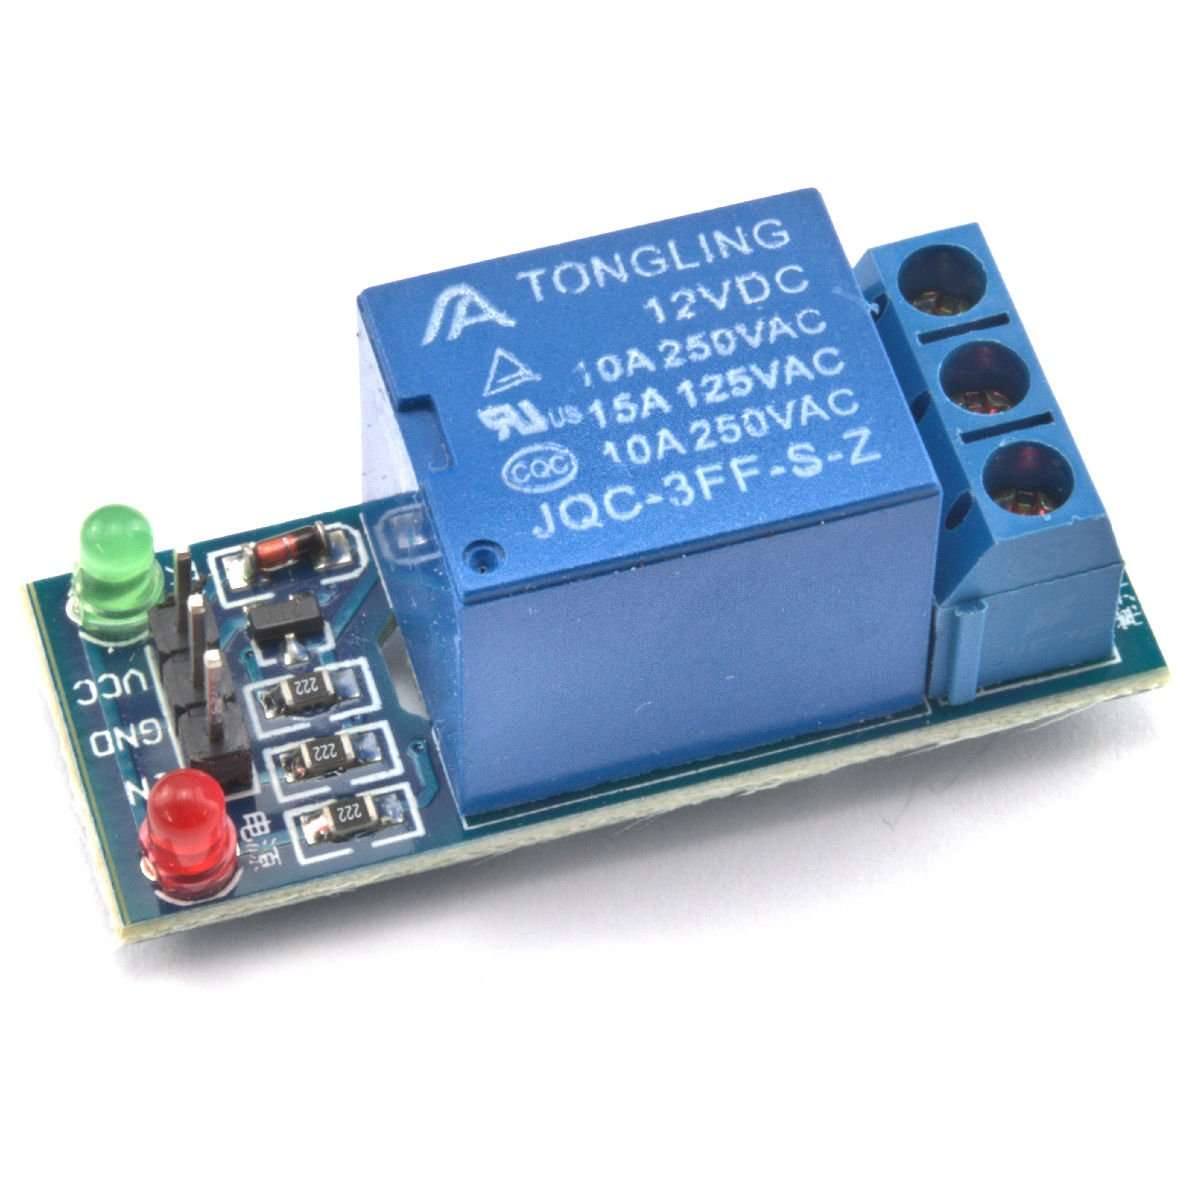 Umtmedia 5v Or 12v 1 2 4 8 16 Channel Relay Module Board For Dc5v To Dc30v Converter By 74hc14 Arduino Raspberry Pi Arm Avr Dsp Pic Computers Accessories